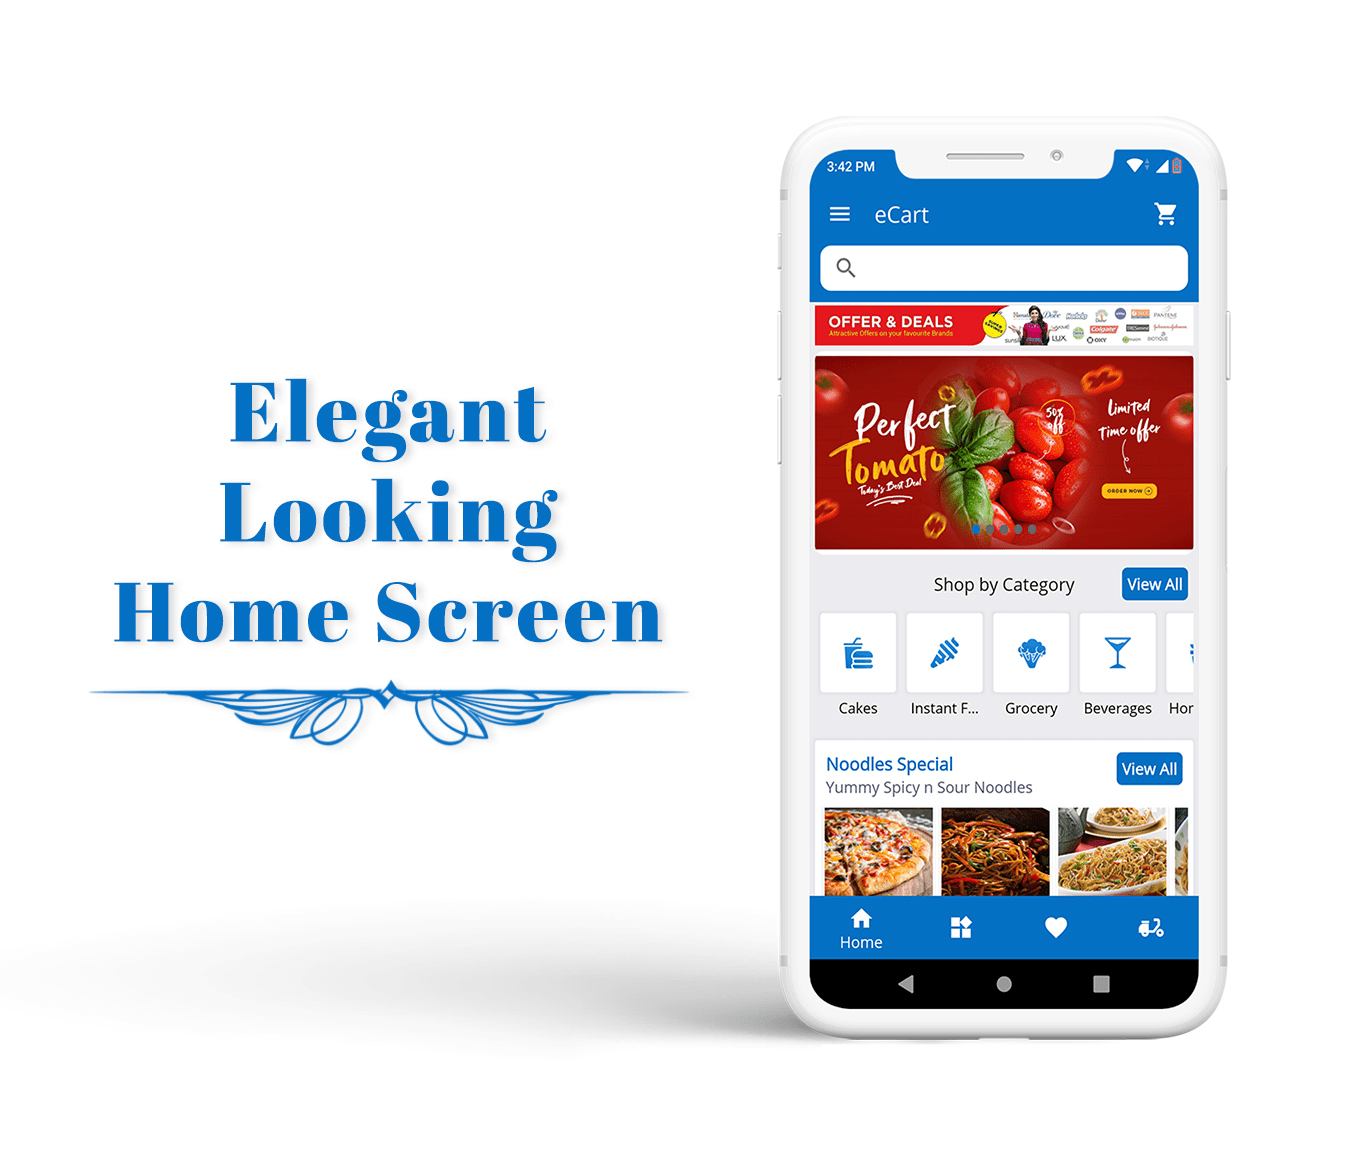 eCart - Grocery, Food Delivery, Fruits & Vegetable store, Full Android Ecommerce App - 6